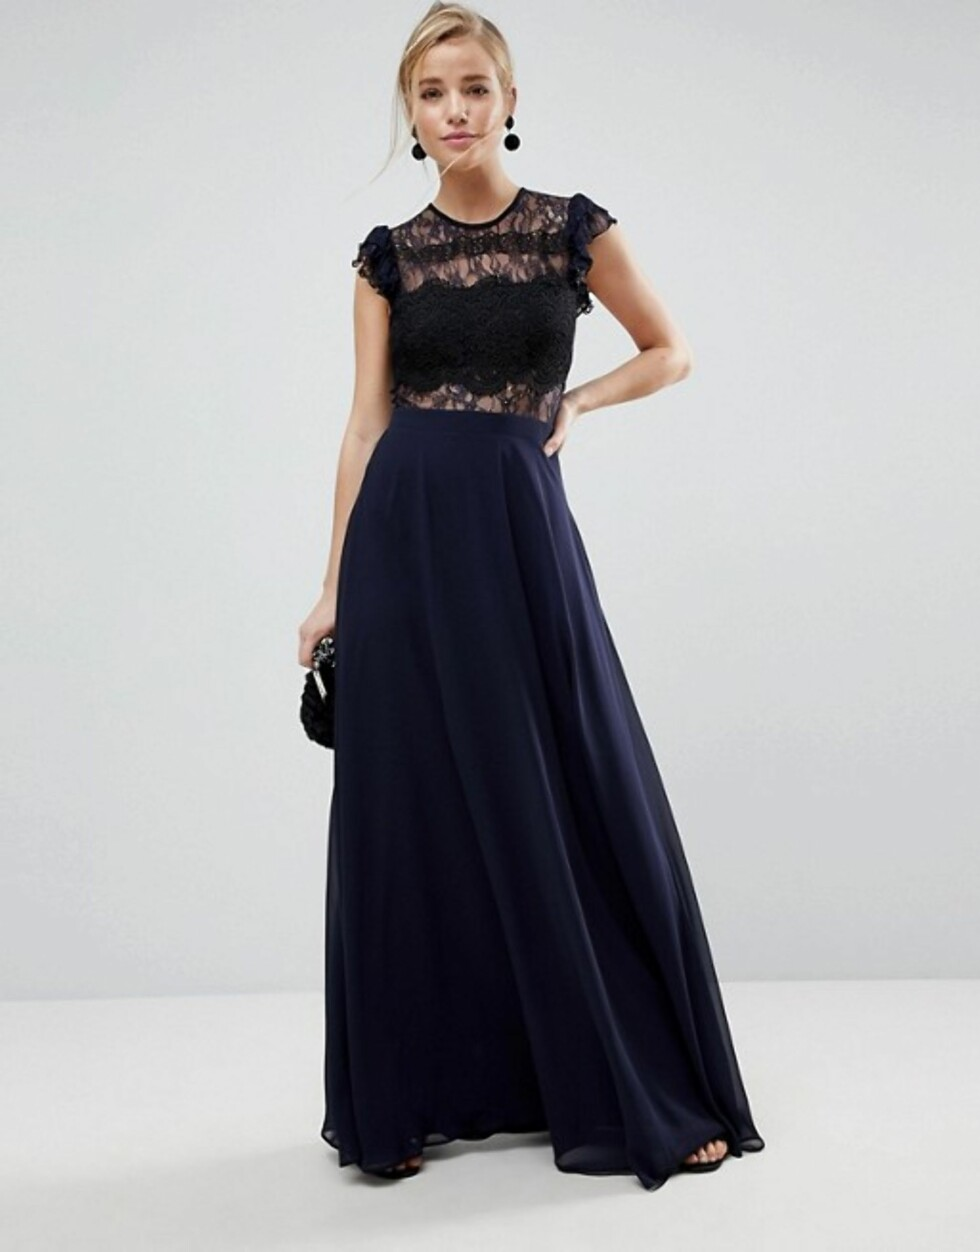 Kjole fra Asos |790,-| http://www.asos.com/asos/asos-lace-maxi-dress-with-lace-frill-sleeve/prd/8806662?clr=navy&SearchQuery=prom%20dress&gridcolumn=3&gridrow=15&gridsize=4&pge=2&pgesize=72&totalstyles=1606